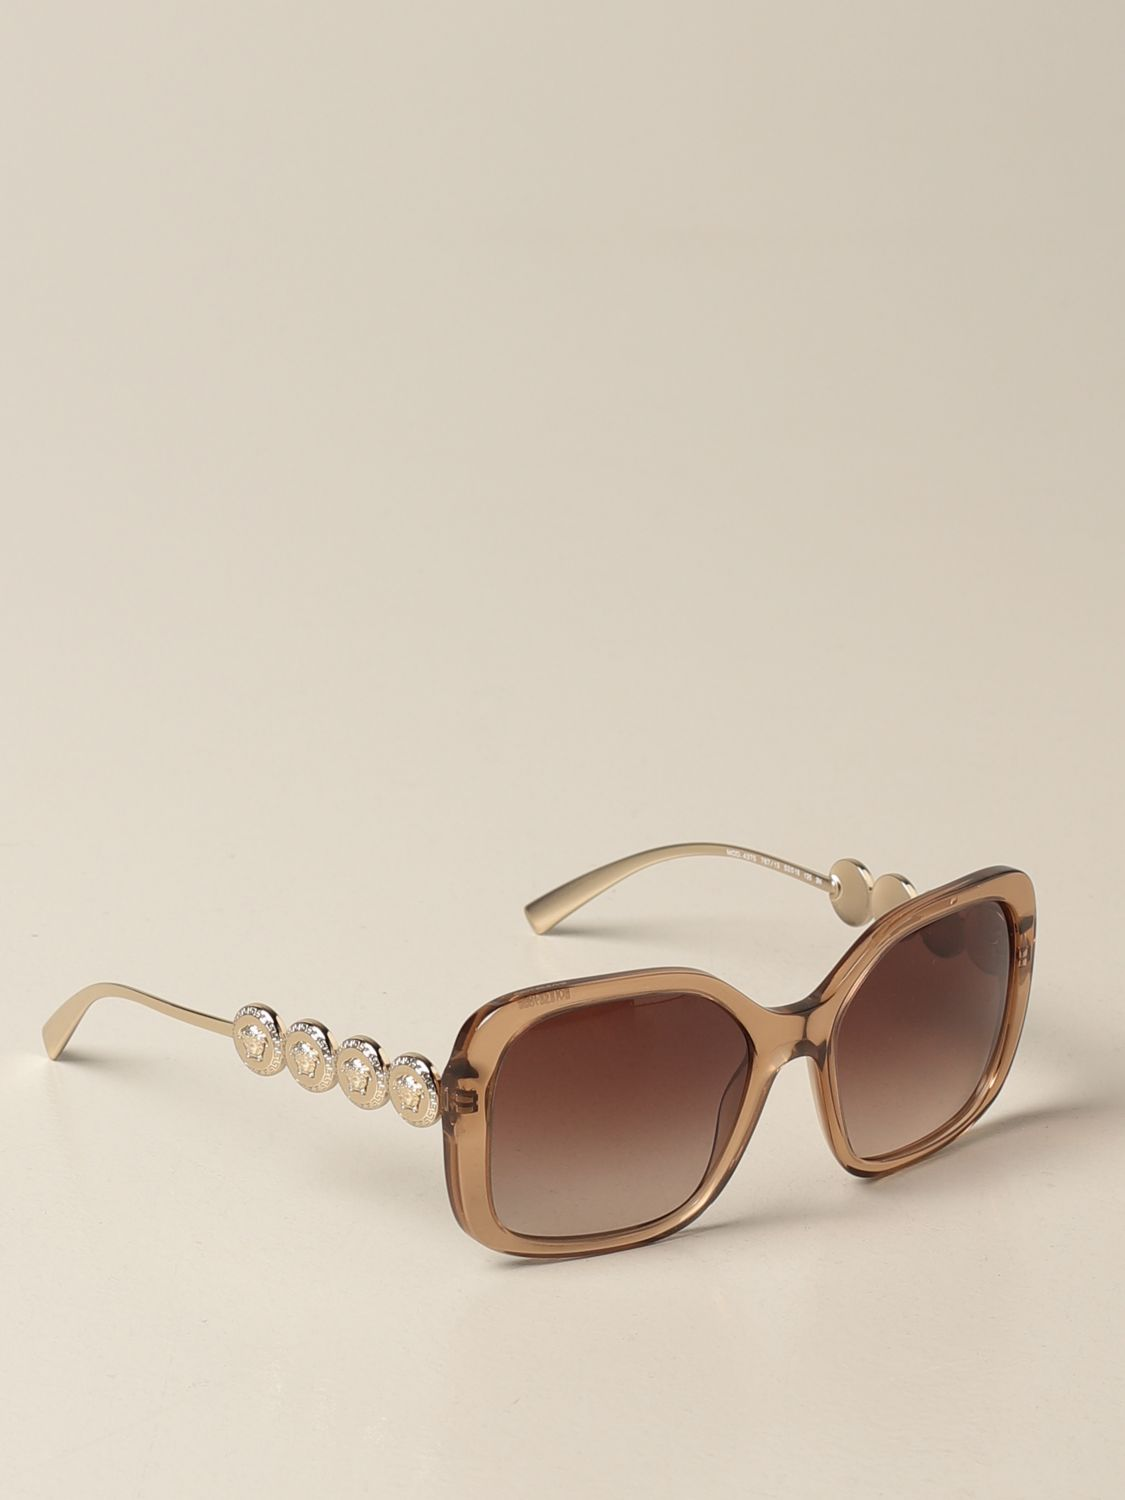 Glasses Versace: Versace sunglasses in acetate with metal temples salmon 1